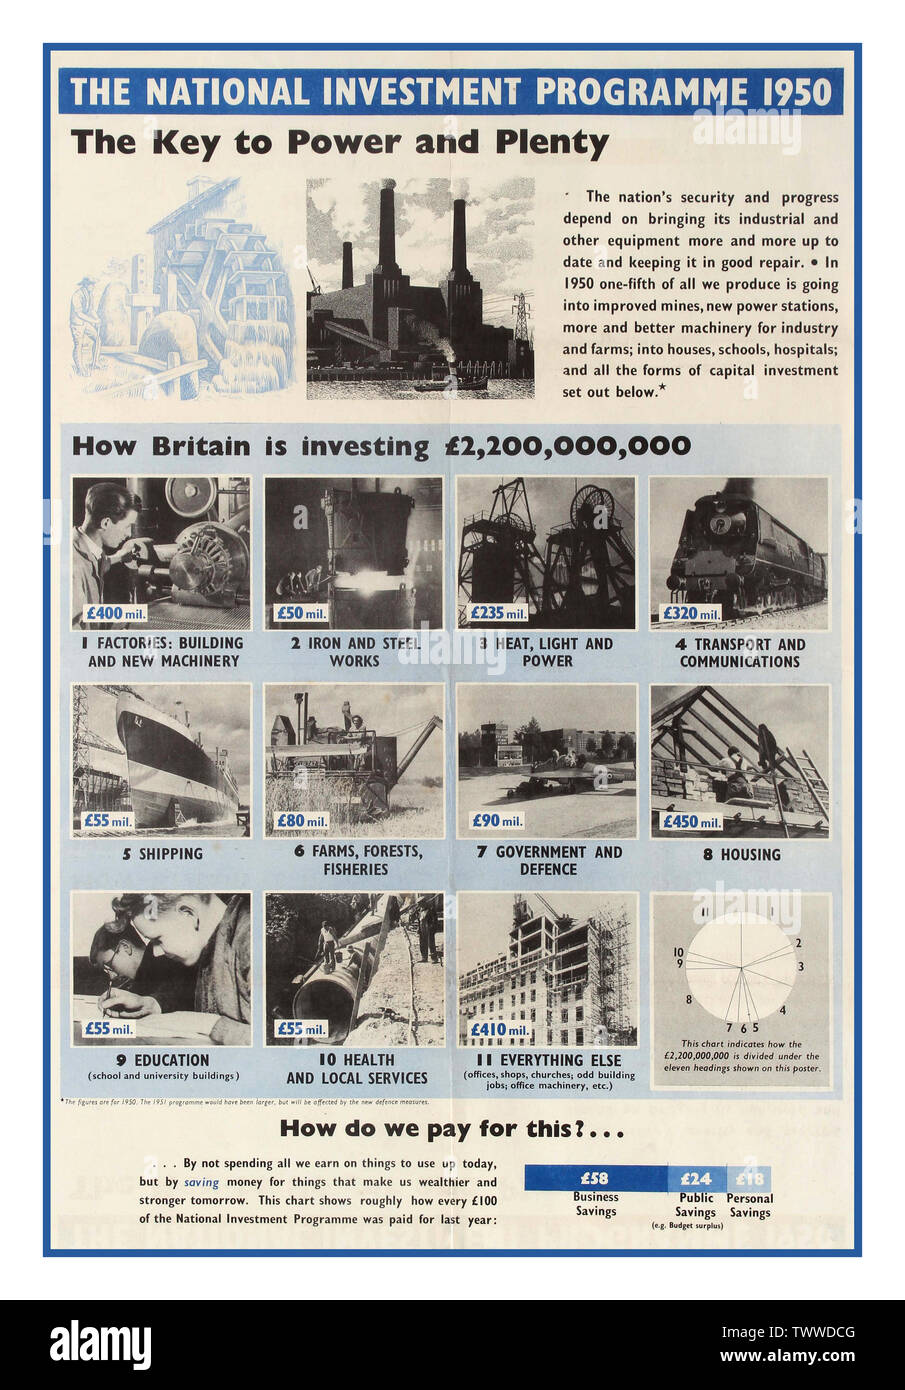 Vintage 1950's National Investment Programme British UK propaganda poster prepared for His Majesty's Government by the Economic Information Units and the Central Office of Information, poster features various black and white photographs illustrating different areas of investments in Britain. Lead image of the Battersea Power Station on top of poster. UK, 1951 - Stock Image